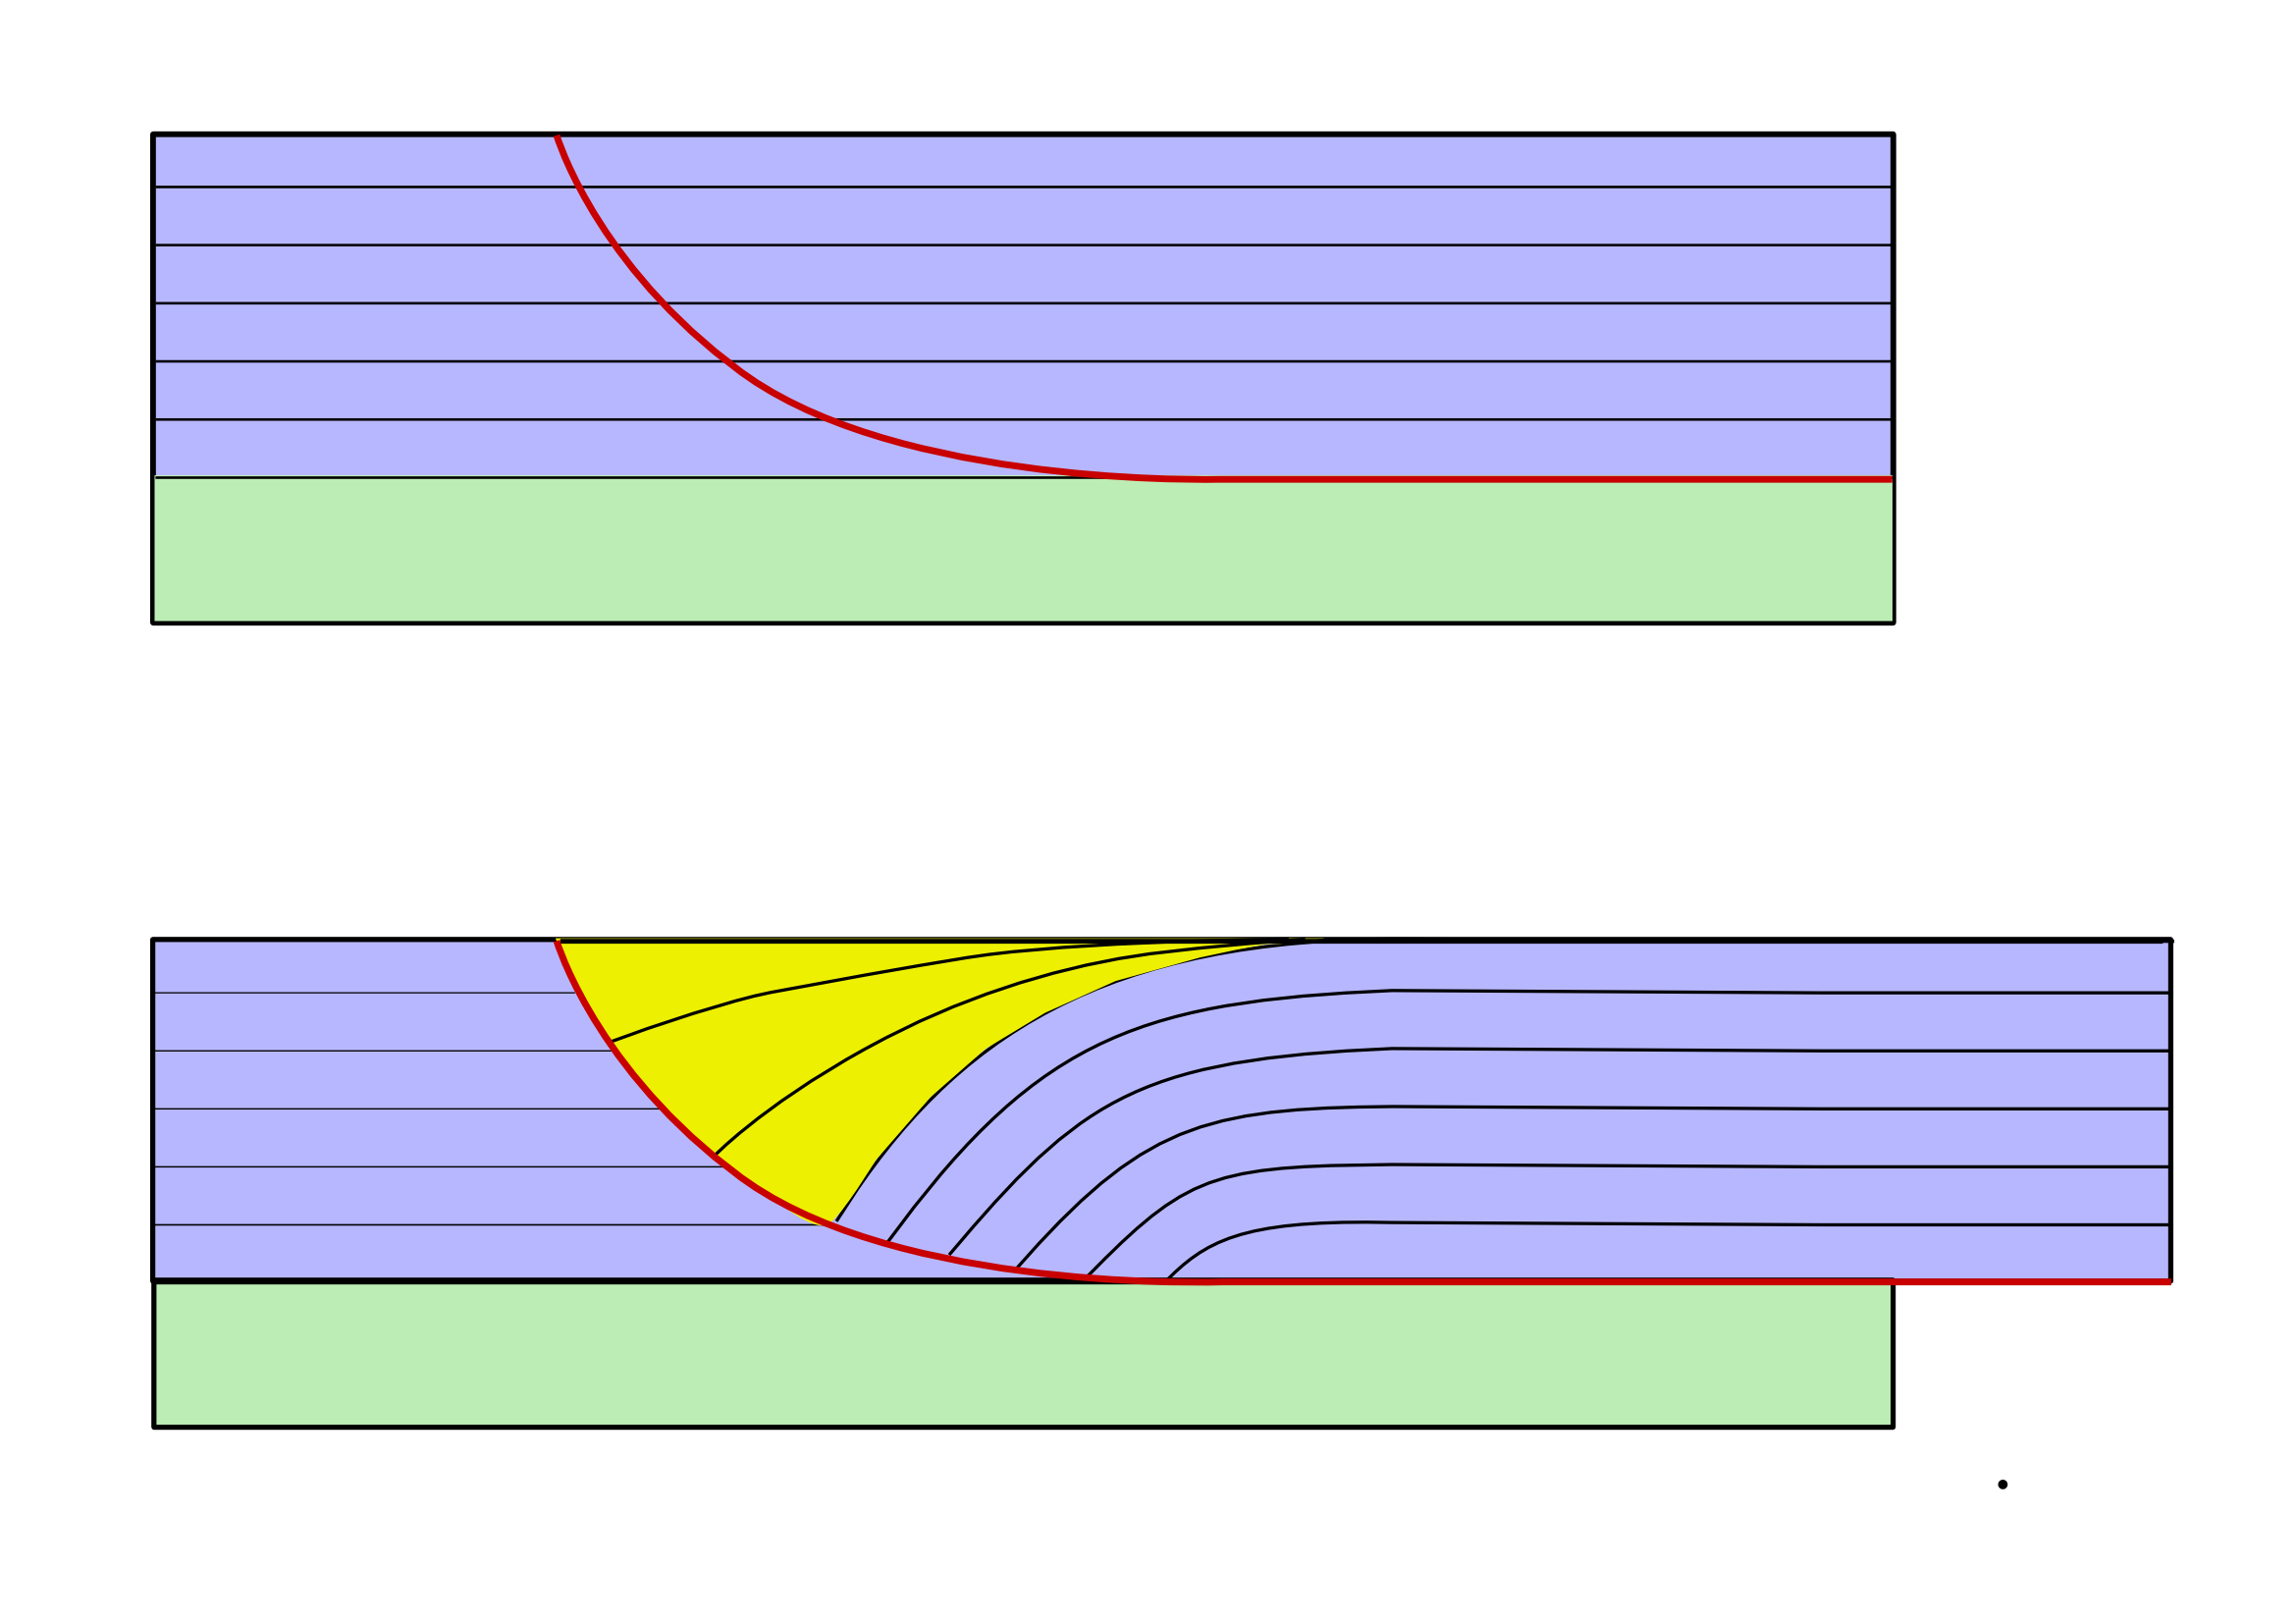 Fold Geology This Diagram Http Enacademicru Pictures Enwiki 6 Ing01png Rollover Anticline